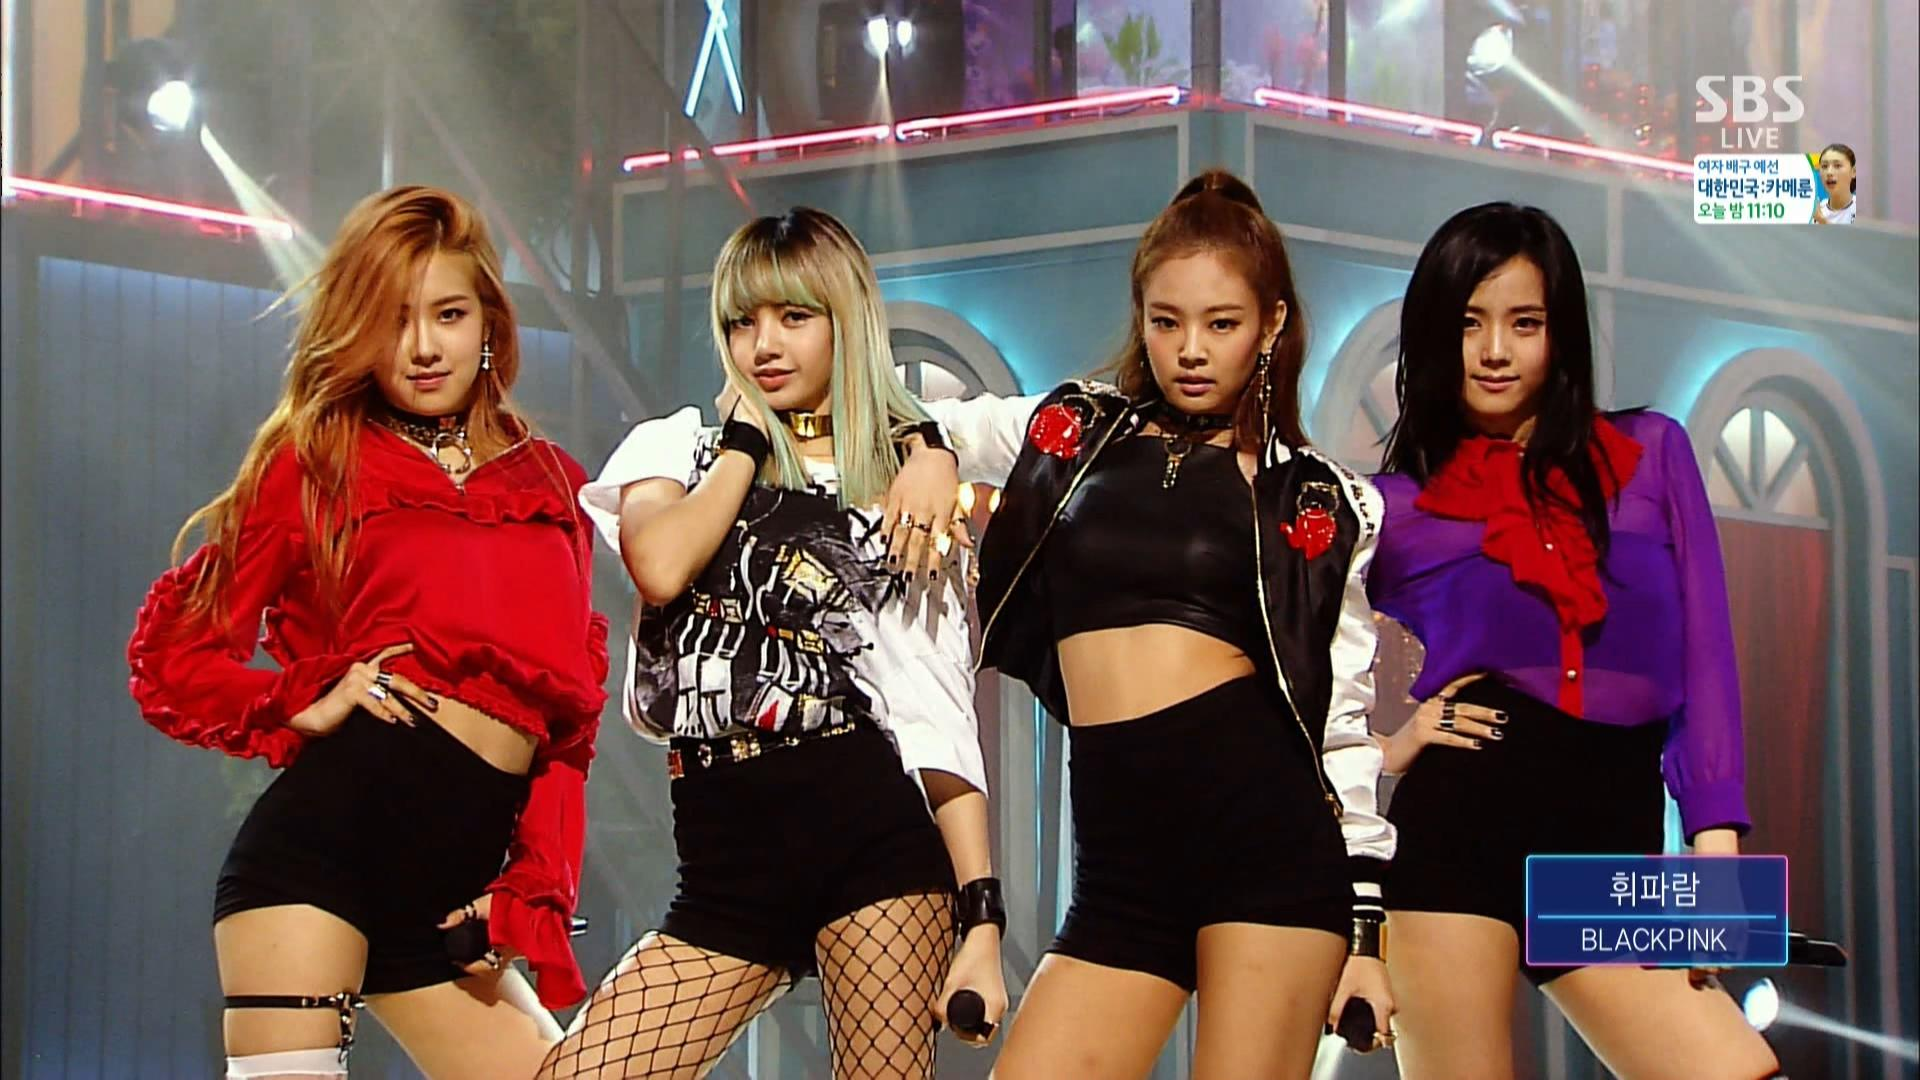 Real Hd Wallpapers 1080p The Real Reason Why Blackpink Is Afraid To Work With Any